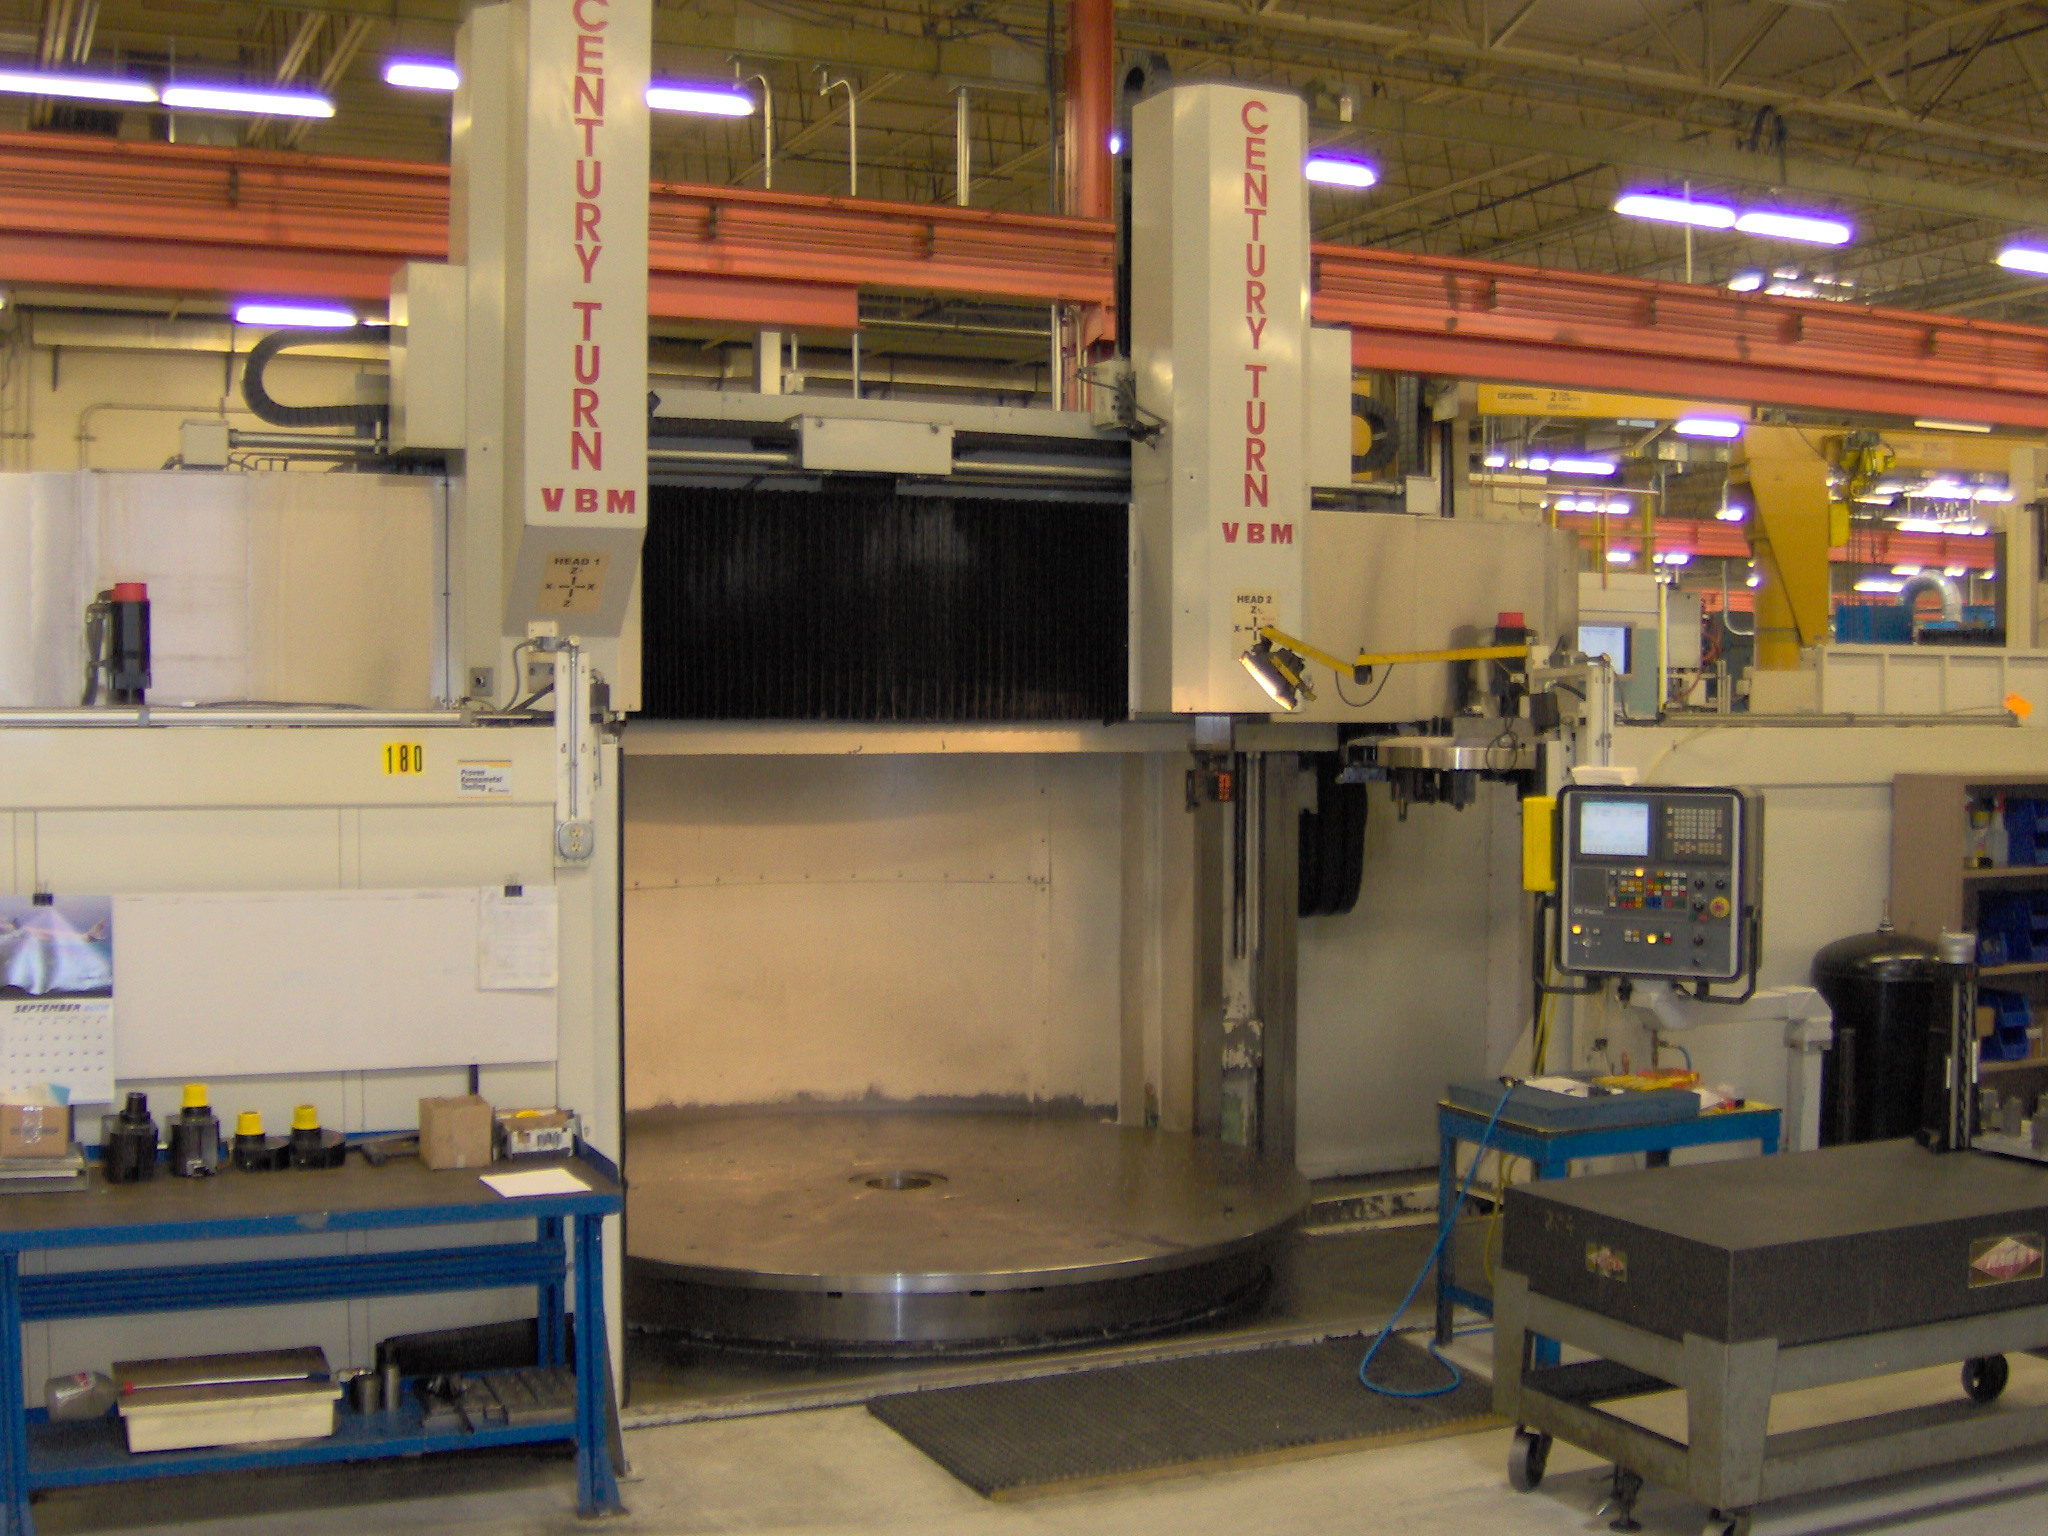 "NEW CENTURY110"" TABLE, 126"" MAX. SWING, 2 RAMS, CHIP CONVEYORS, FANUC 18I-TA 4-AXIS CONTROL"